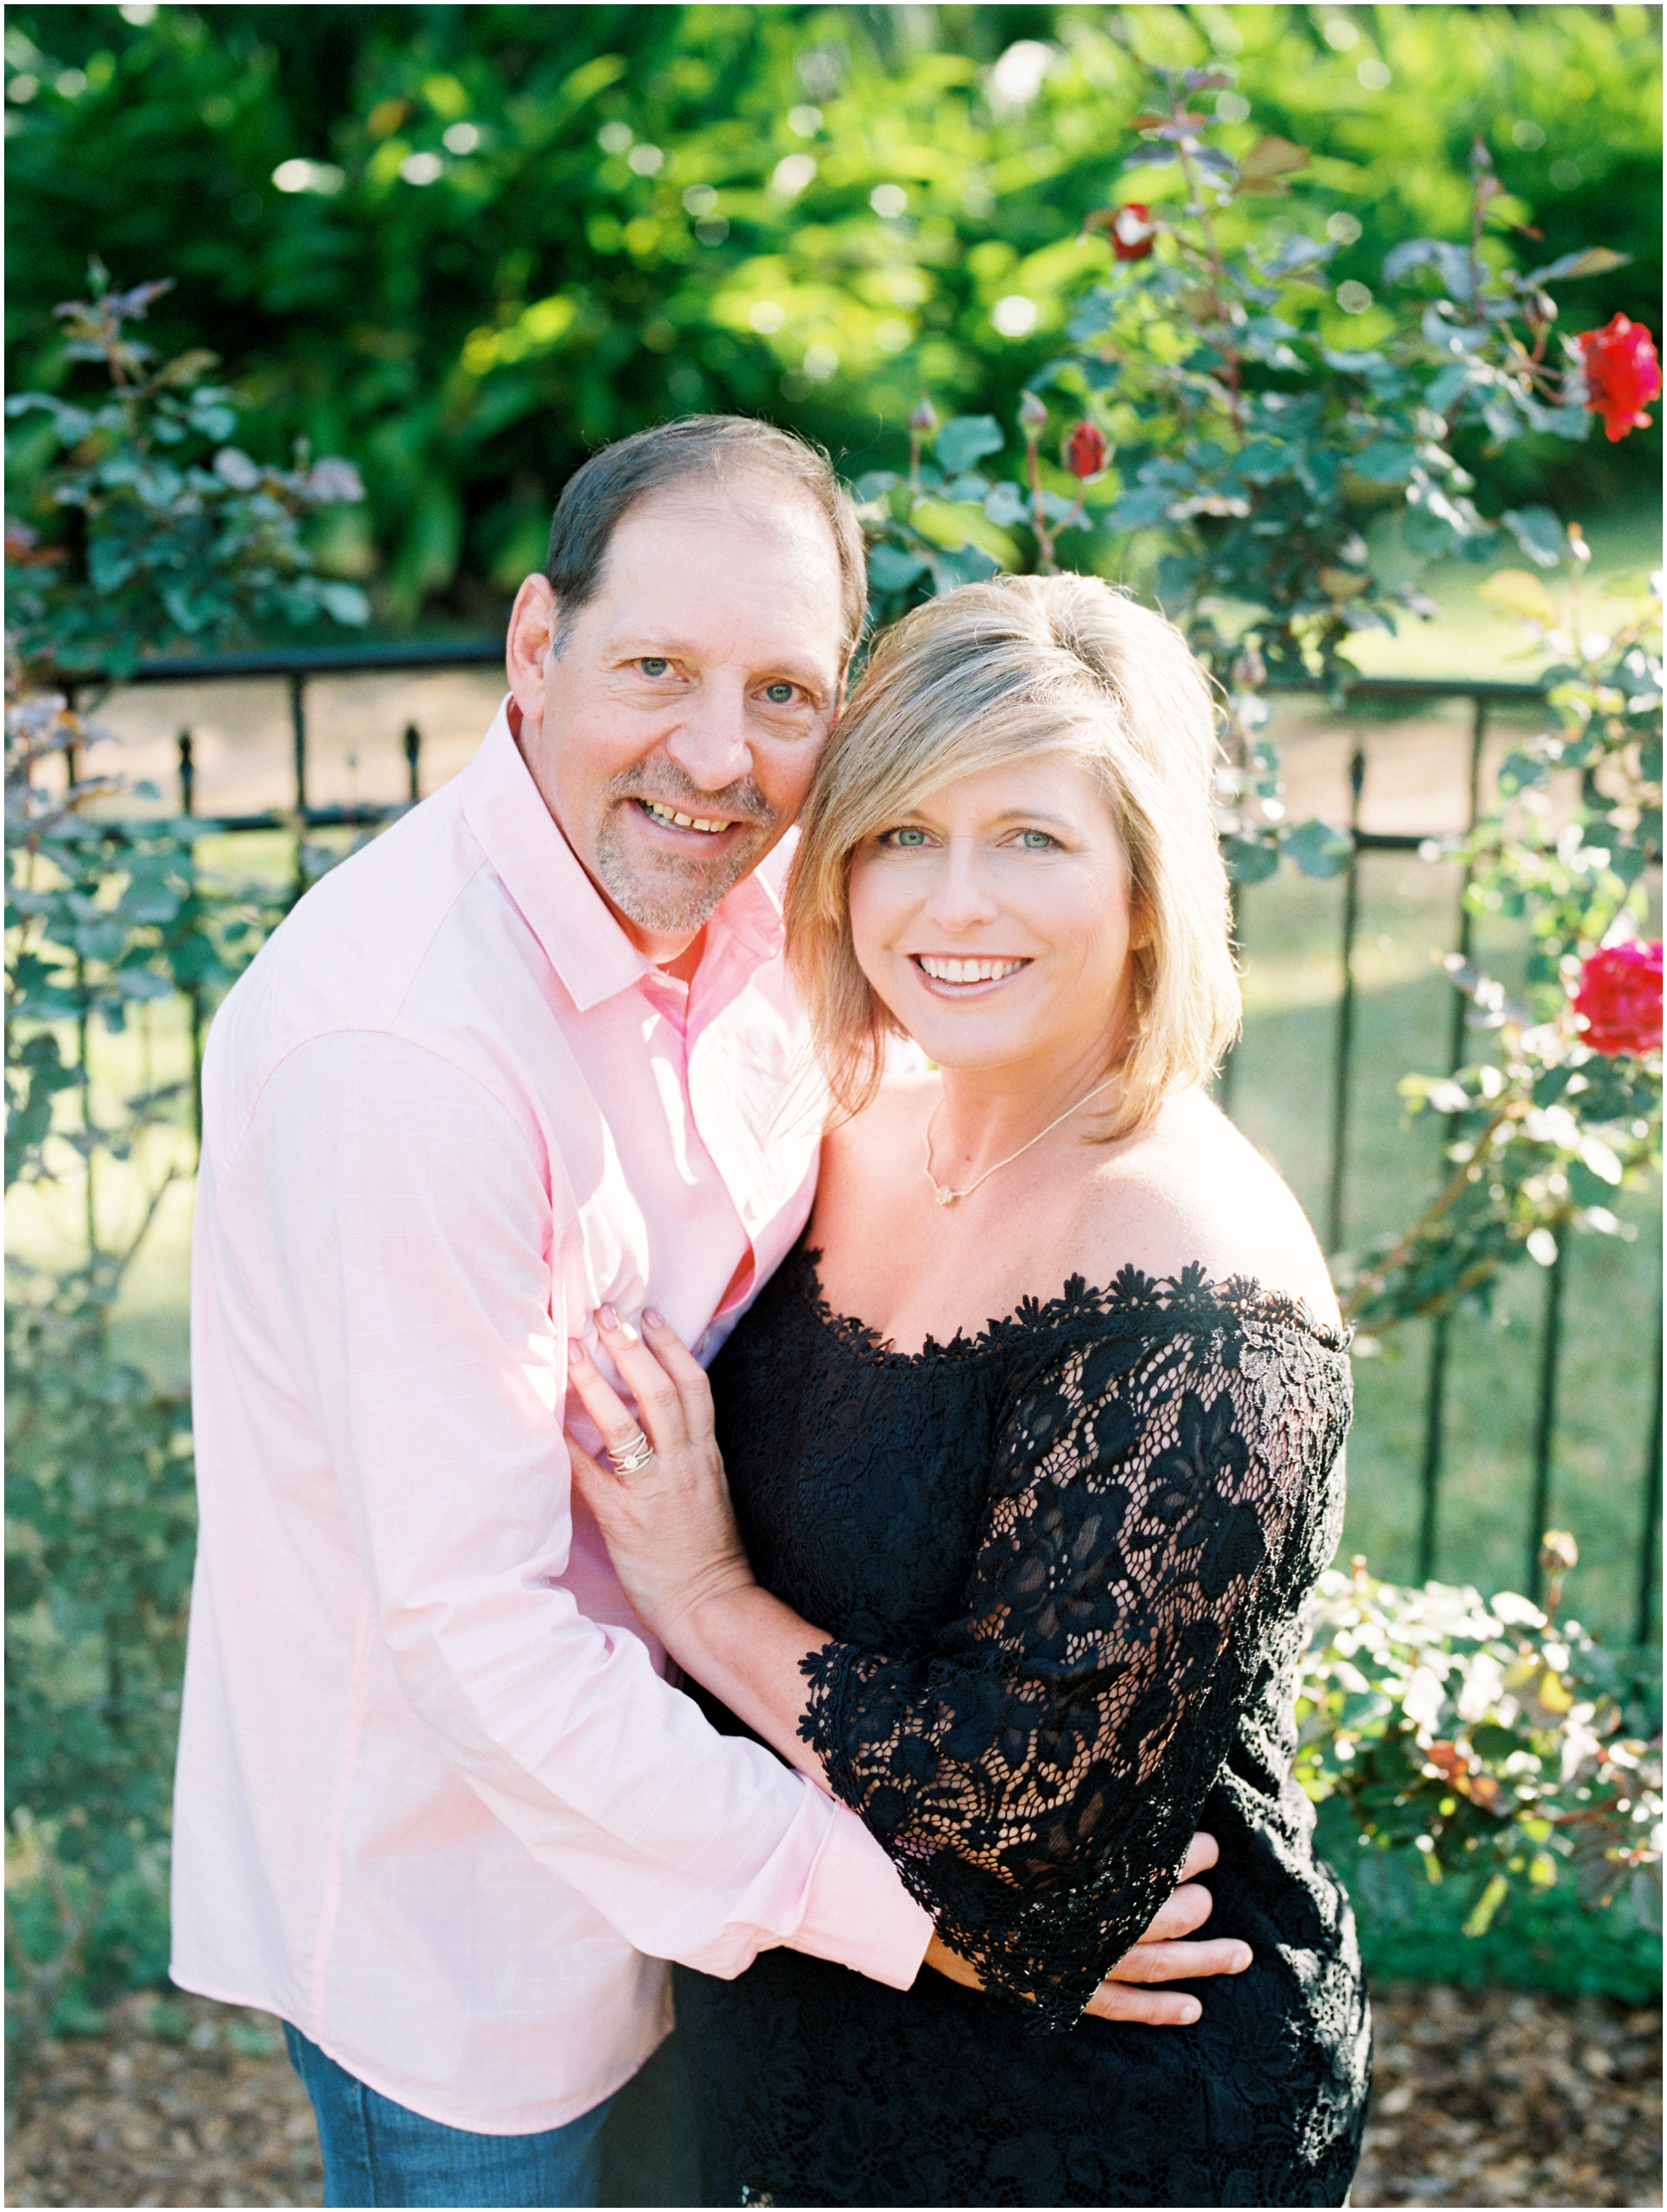 Lisa Silva Photography- Jacksonville, St. Augustine, Amelia Island, Ponte Vedra Beach, North East Florida Fine Art Film Photographer- Anniversary Session at Washington Oaks in Palm Coast, Florida_0038.jpg